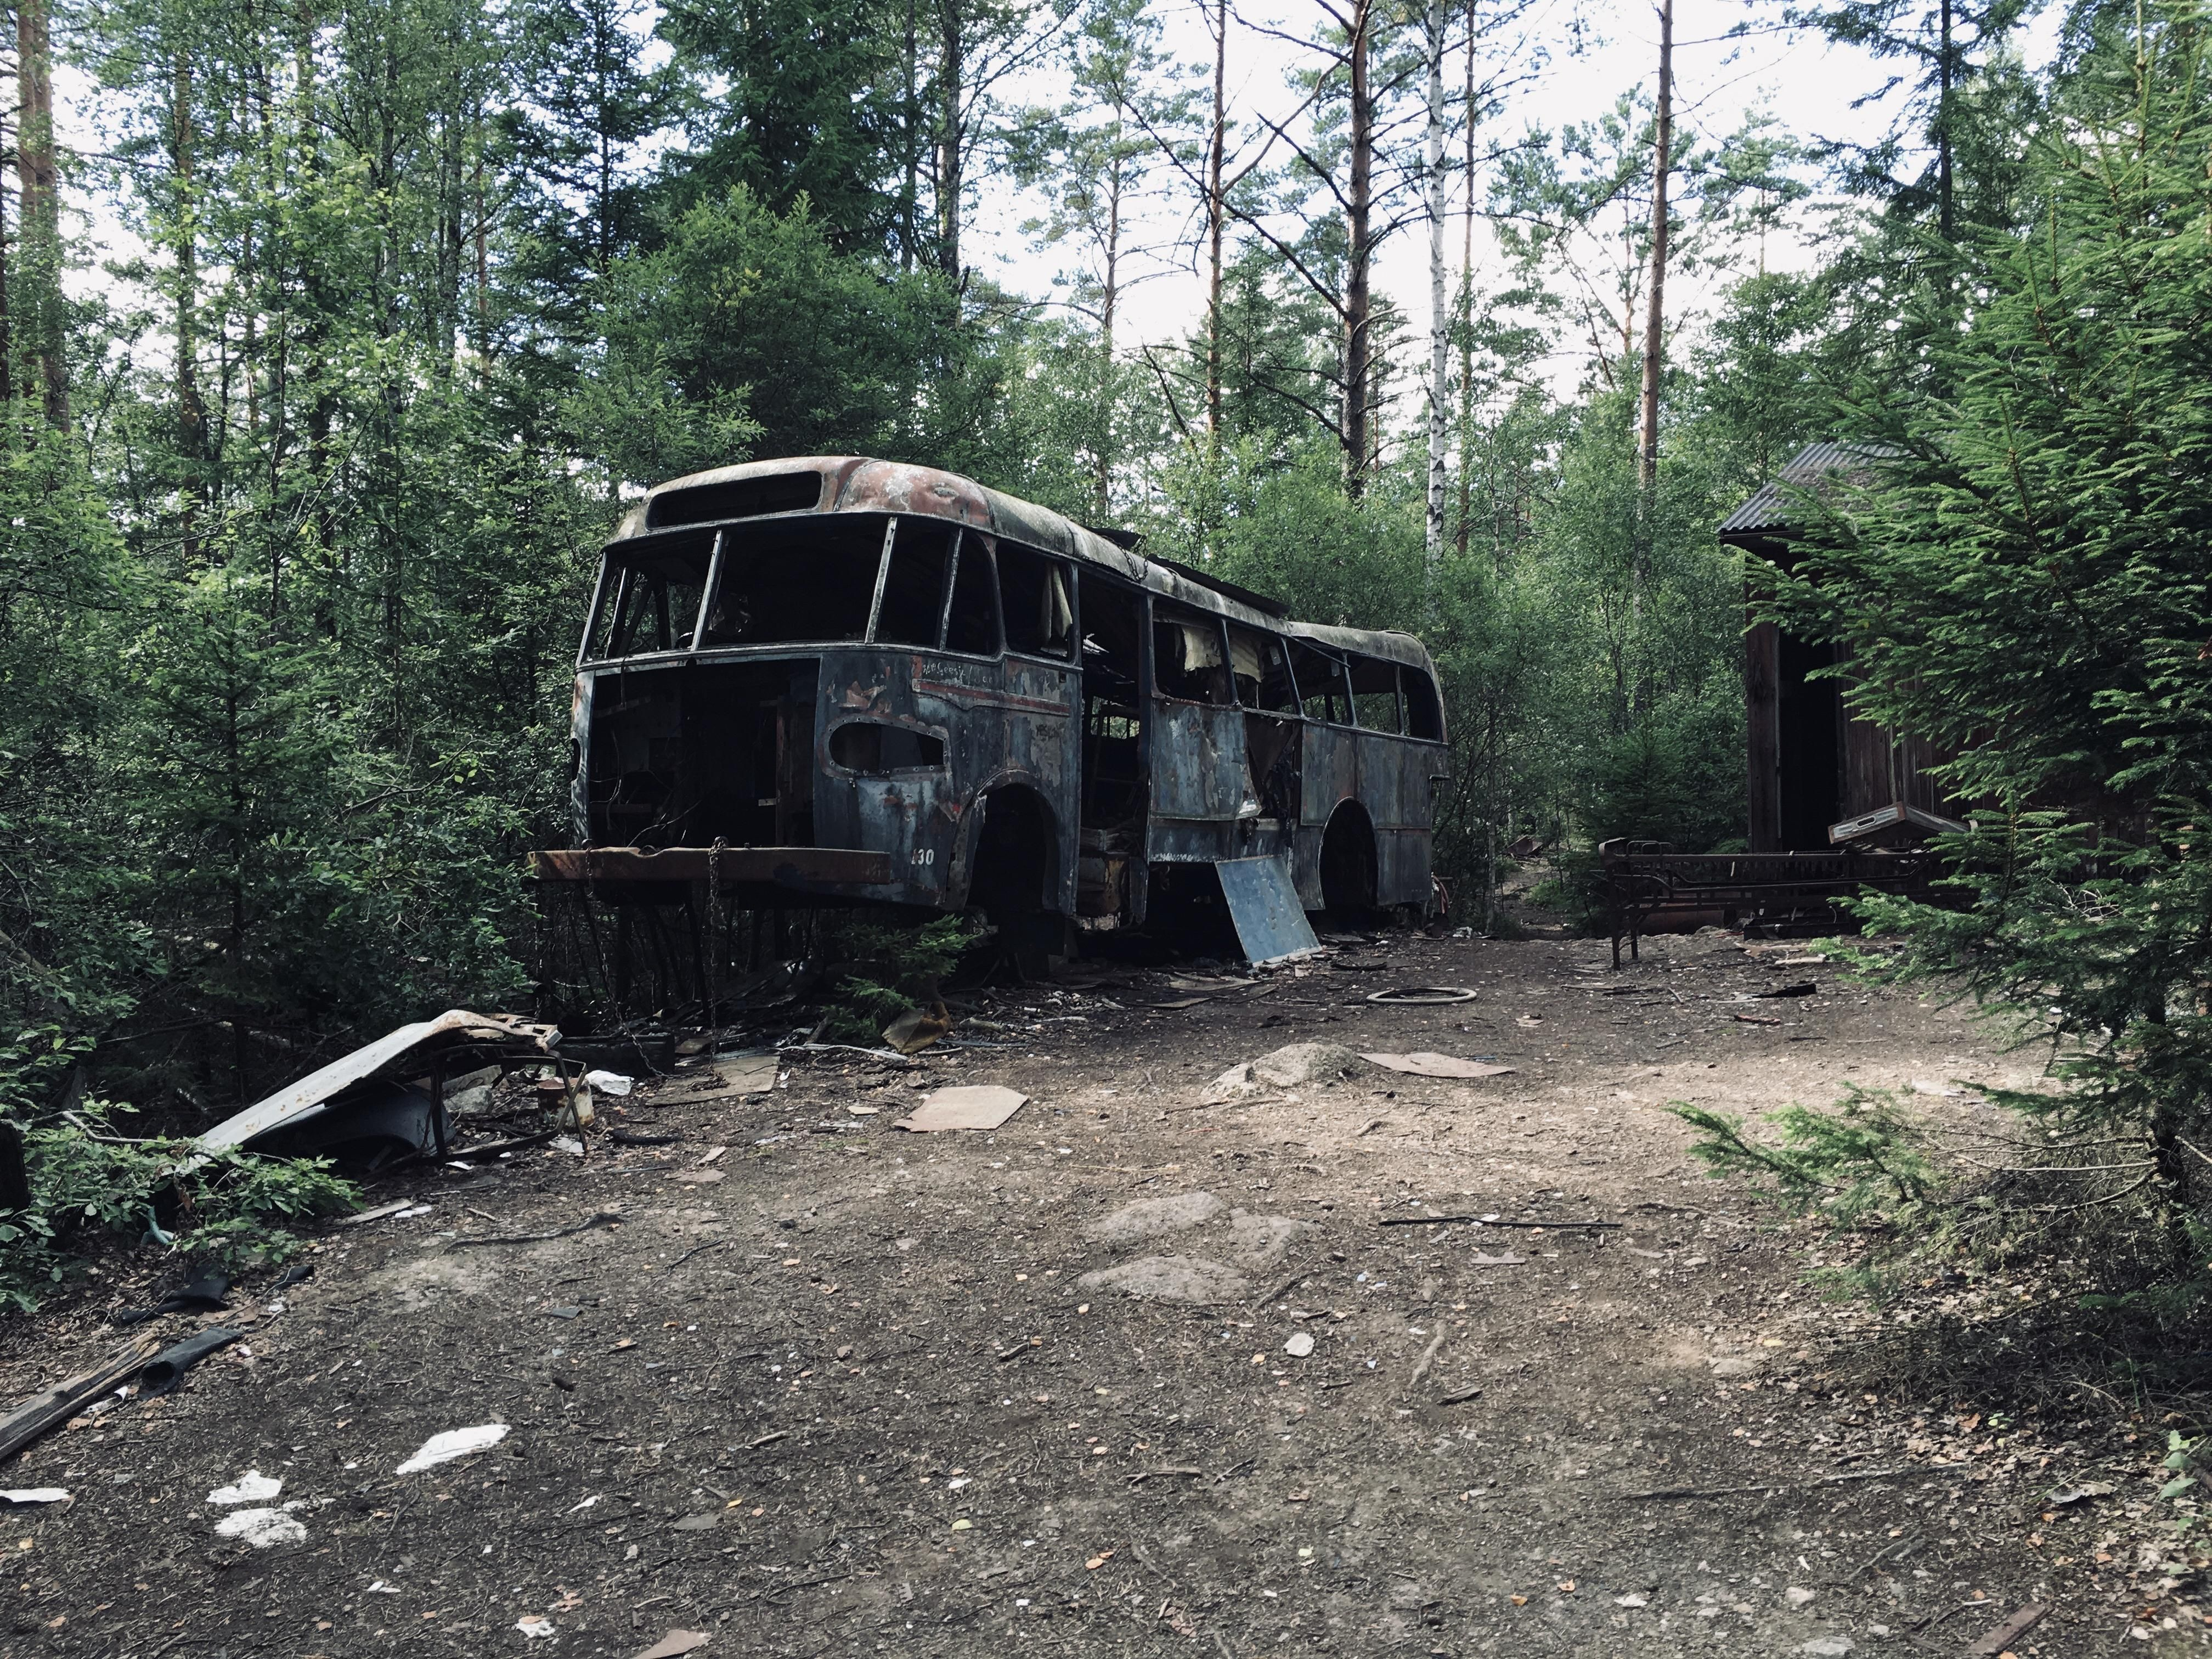 Abandoned bus, Car Cemetery, Sweden [OC]